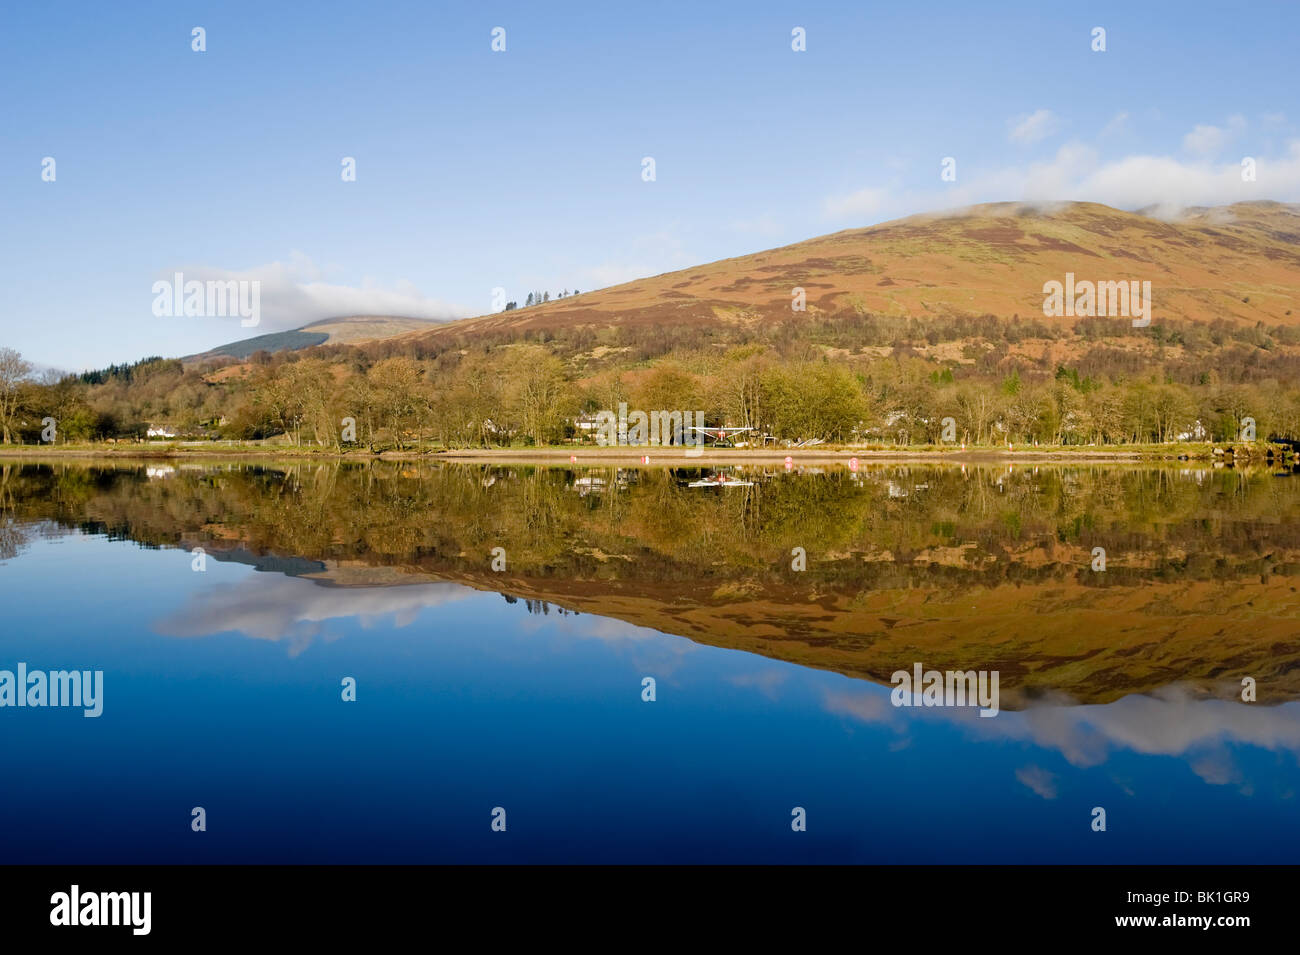 View from kayak of Loch Earn Perthshire Scotland - Stock Image